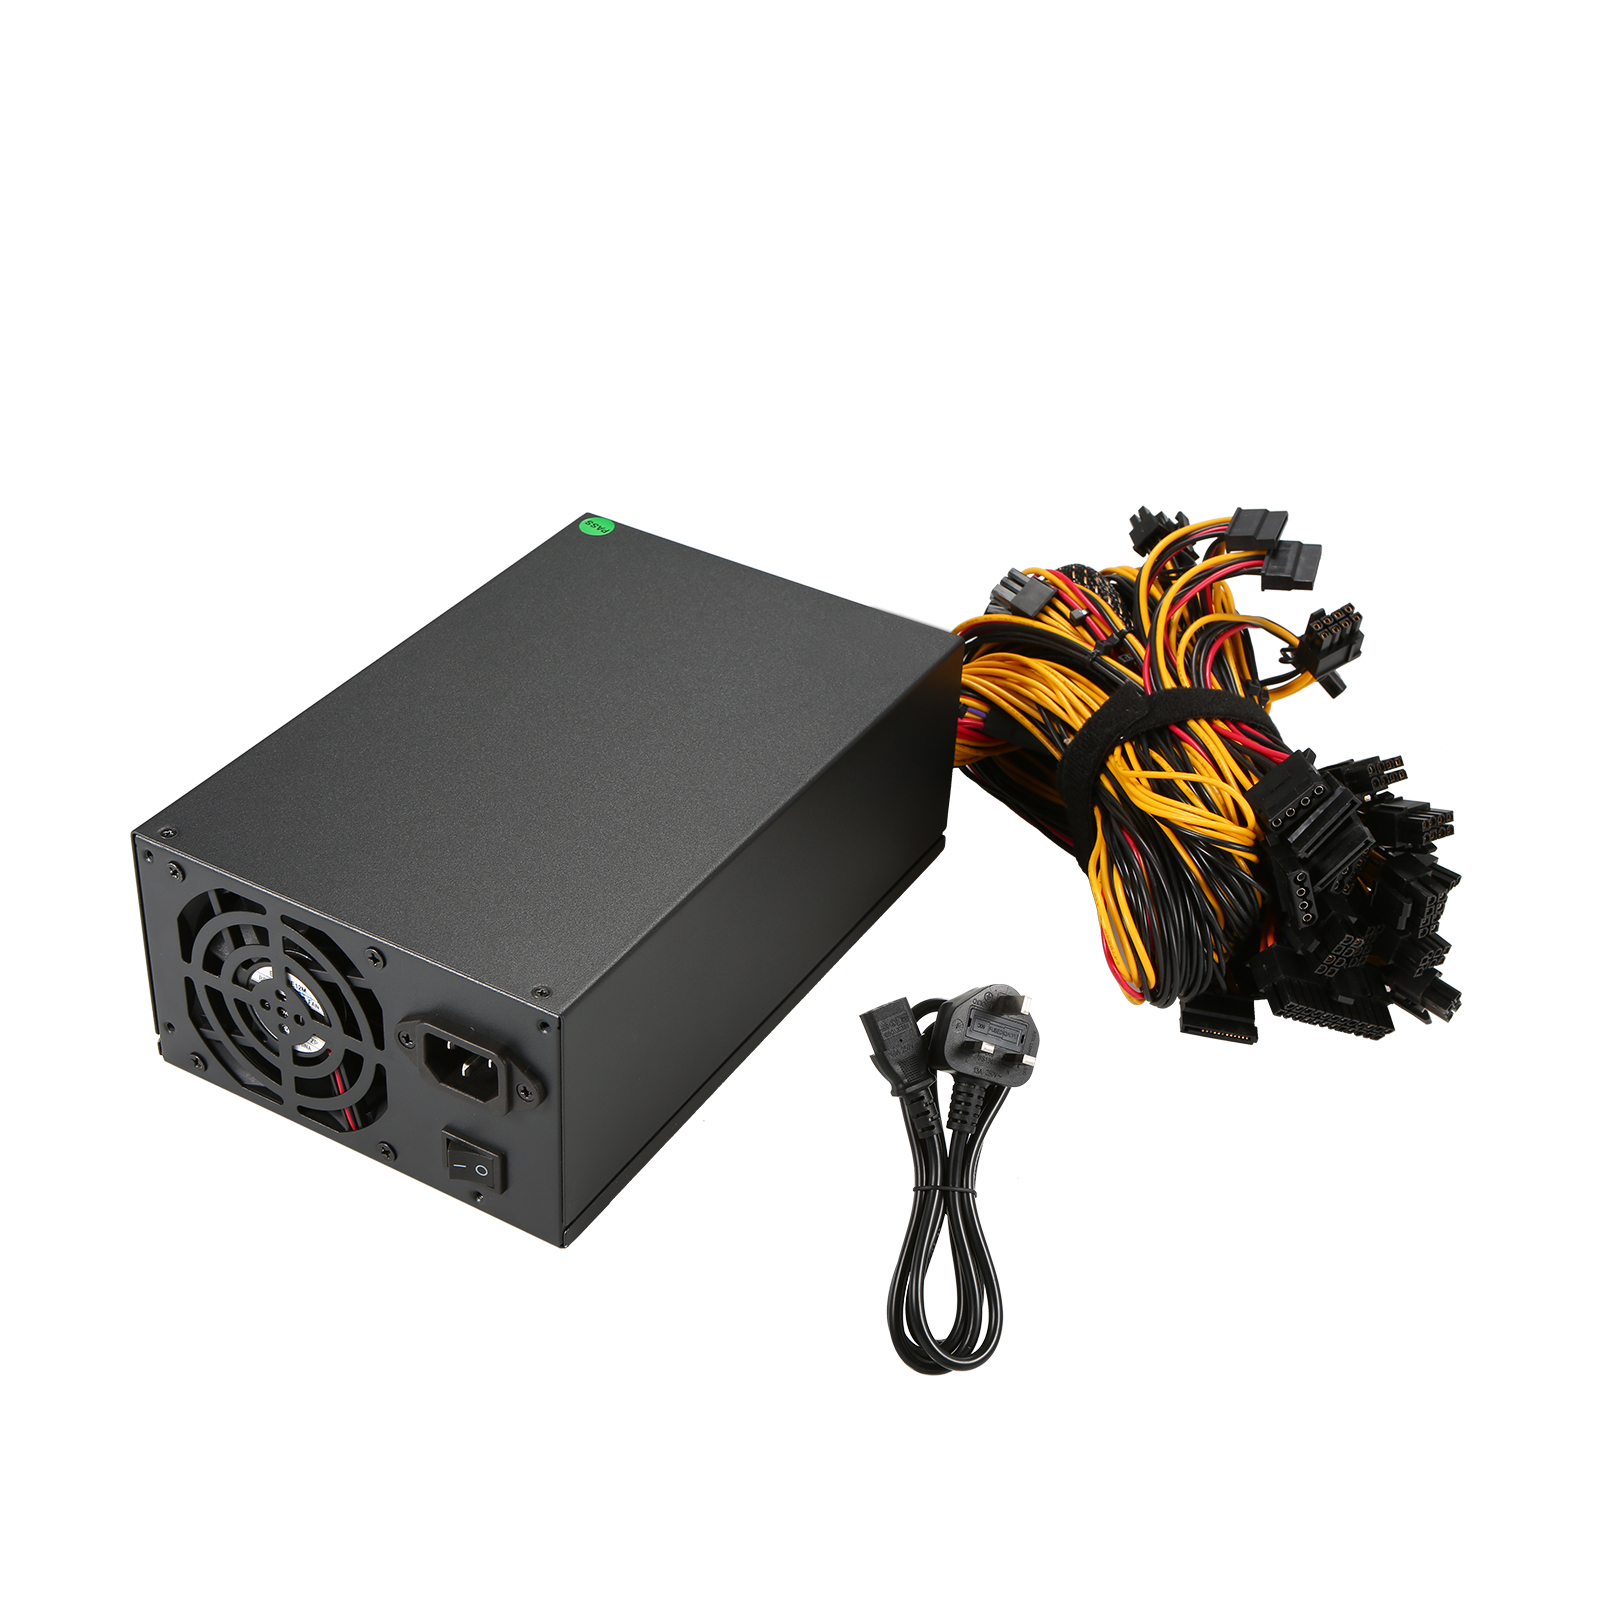 2000W Over 90% Efficiency ATX12V V2.31 ETH Coin Mining Miner Power Supply Active PFC Power Supply for 8 graphics cards bitcoin skmei 0650 9091 g page 4